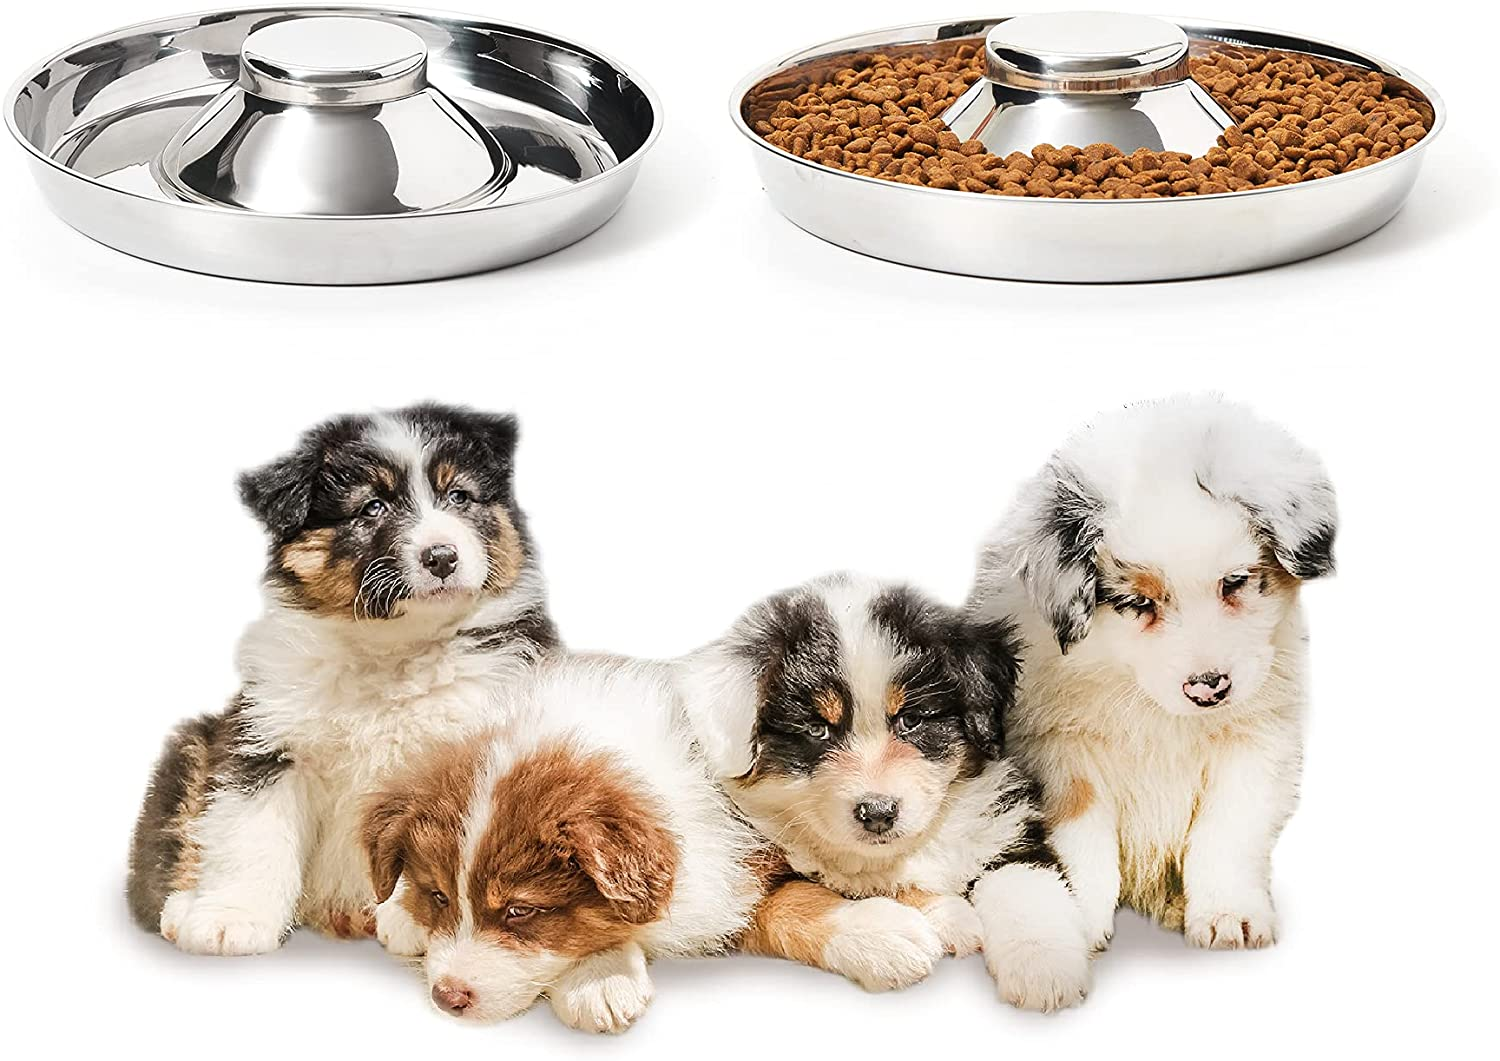 Thankspaw Stainless Steel Puppy Bowls, Set of 2 Puppy Feeder, Dog Food and Water Bowl, Food Feeding Weaning for Small Medium Large Dogs, Pets, M